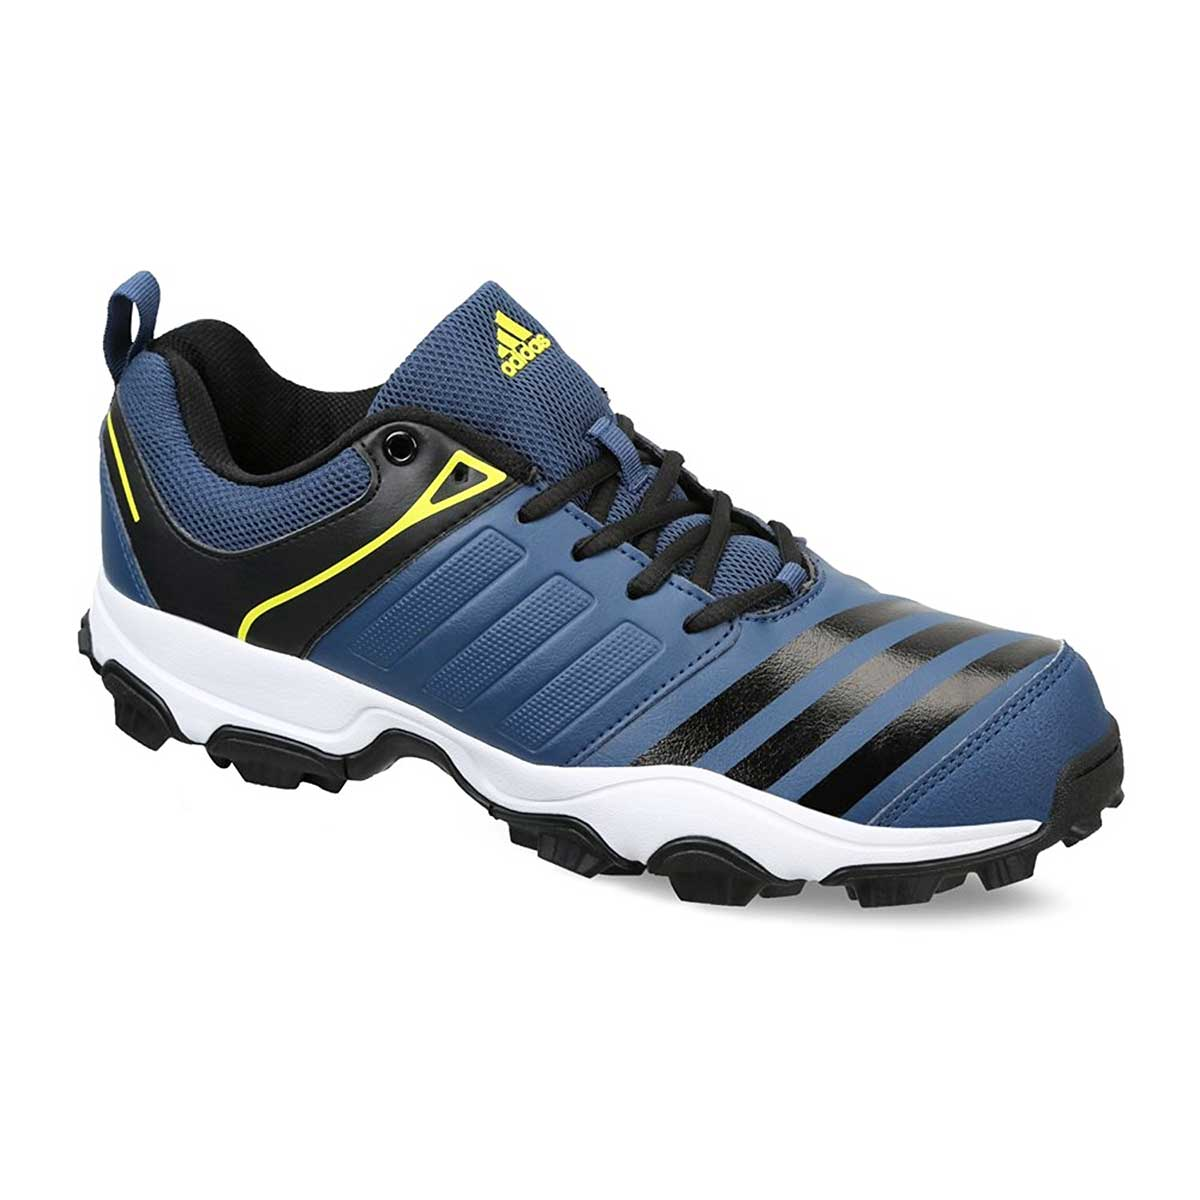 29f8e34b5c7d8 Buy Adidas 22 Yards Trainer 16 Low Cricket Shoes Online in India